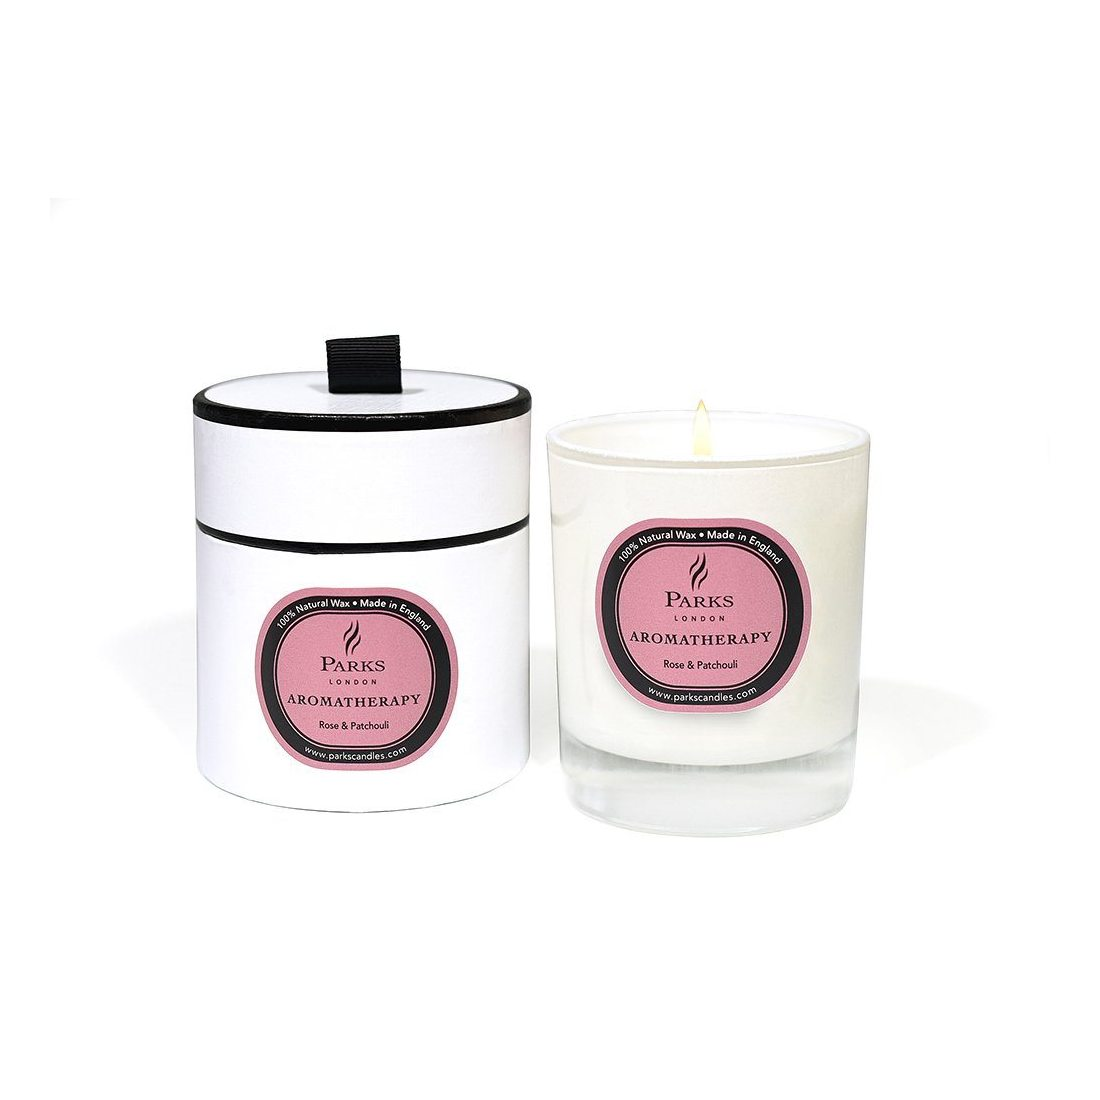 Parks London Aromatherapy Bougie naturelle Rose & Patchouli 235 g Coffret cadeau